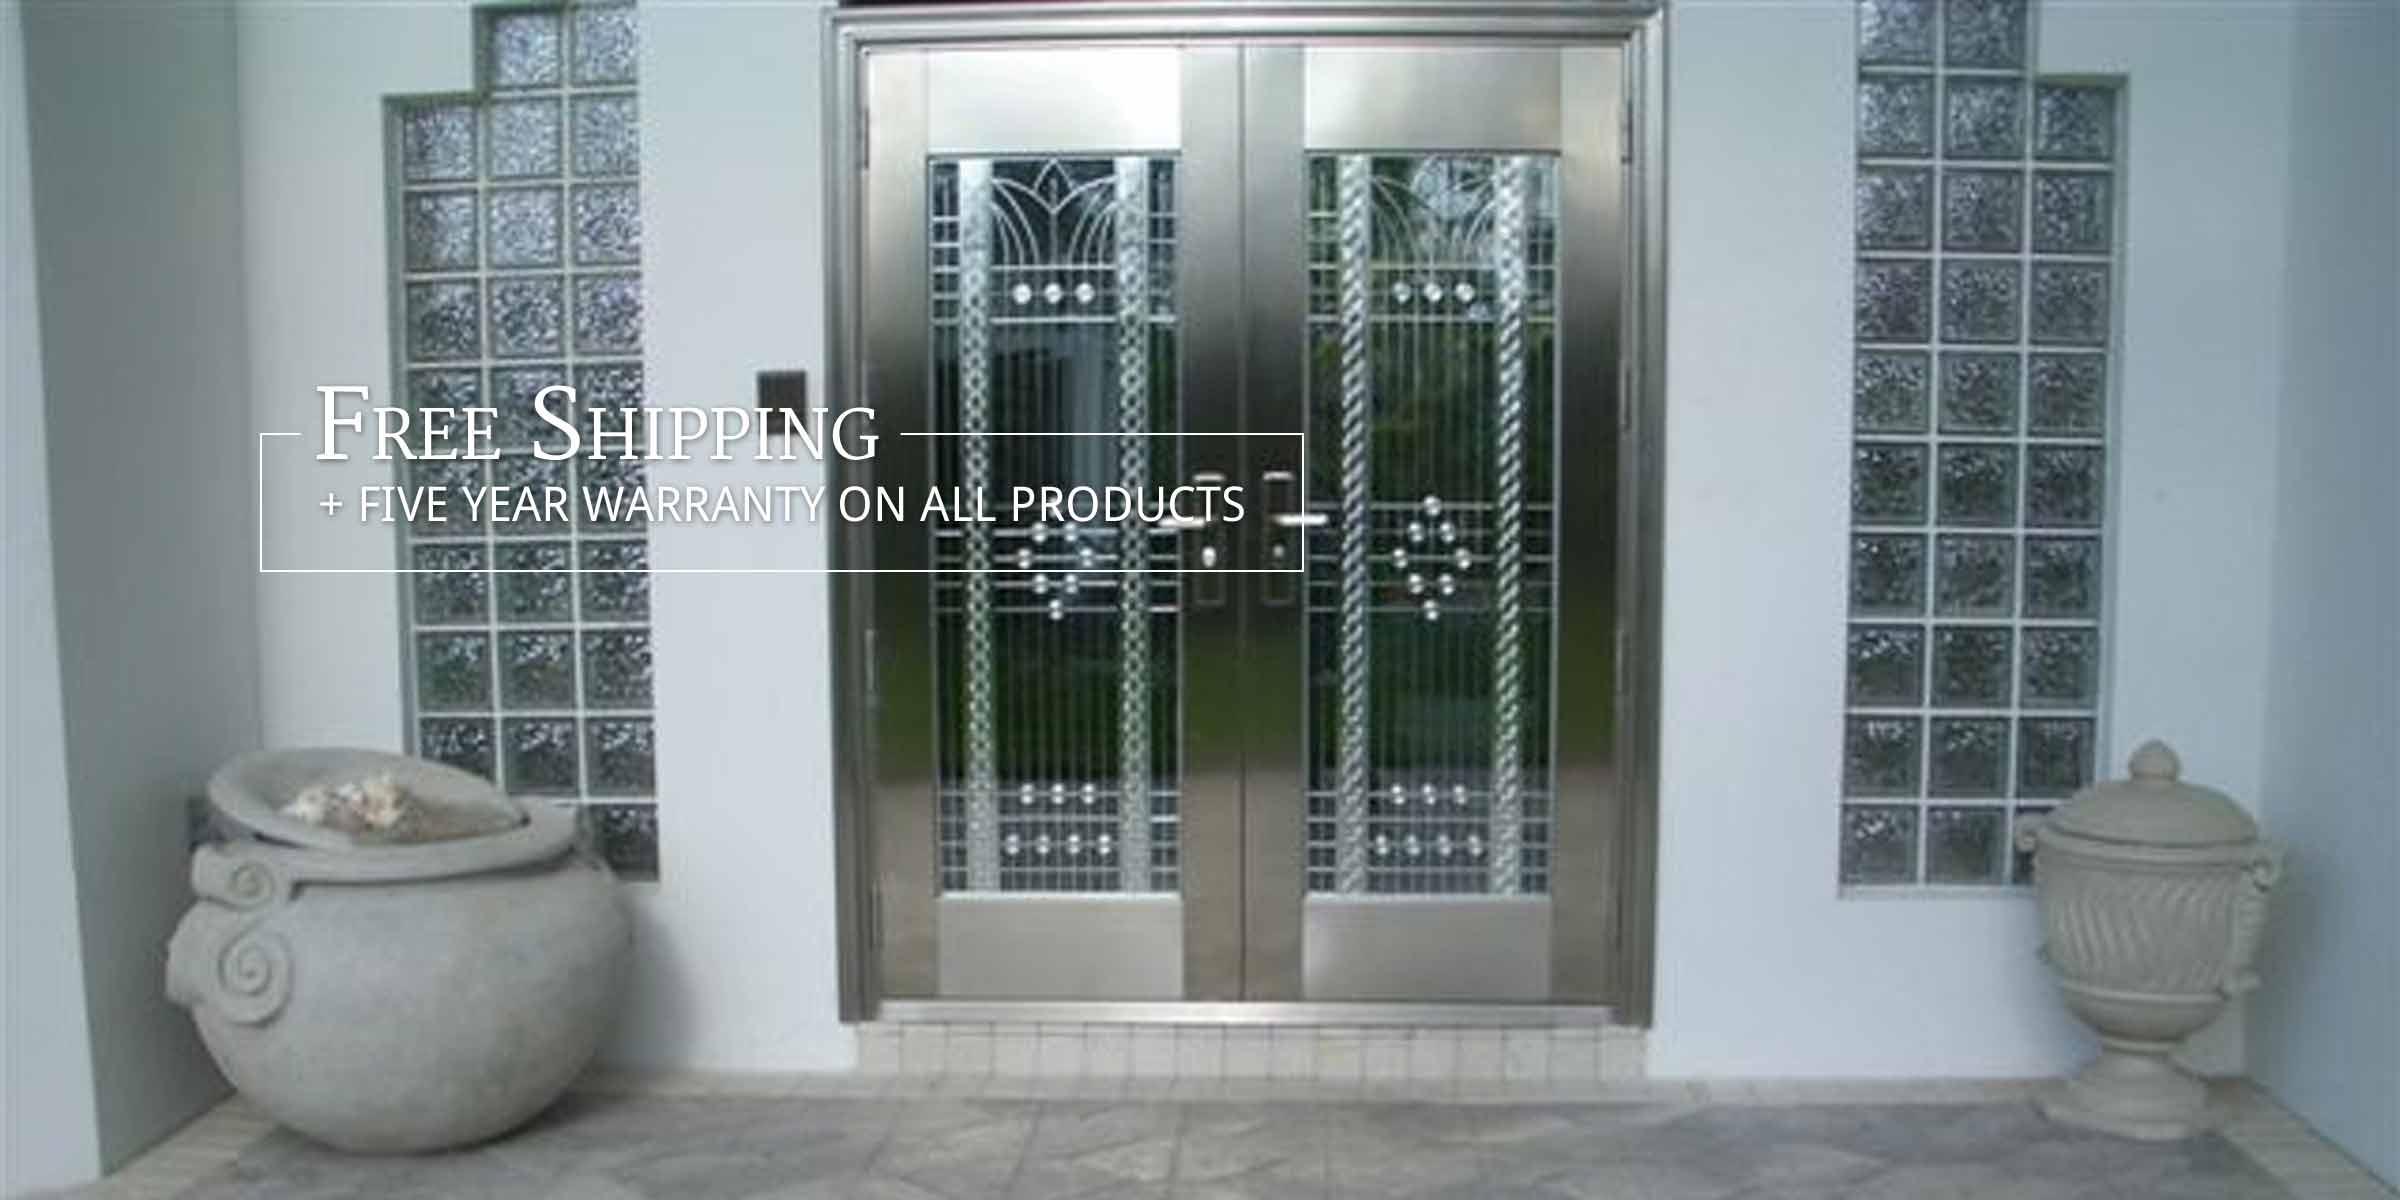 Photo: Stainless Steel Door. Text: Free Shipping + Five Year Warranty